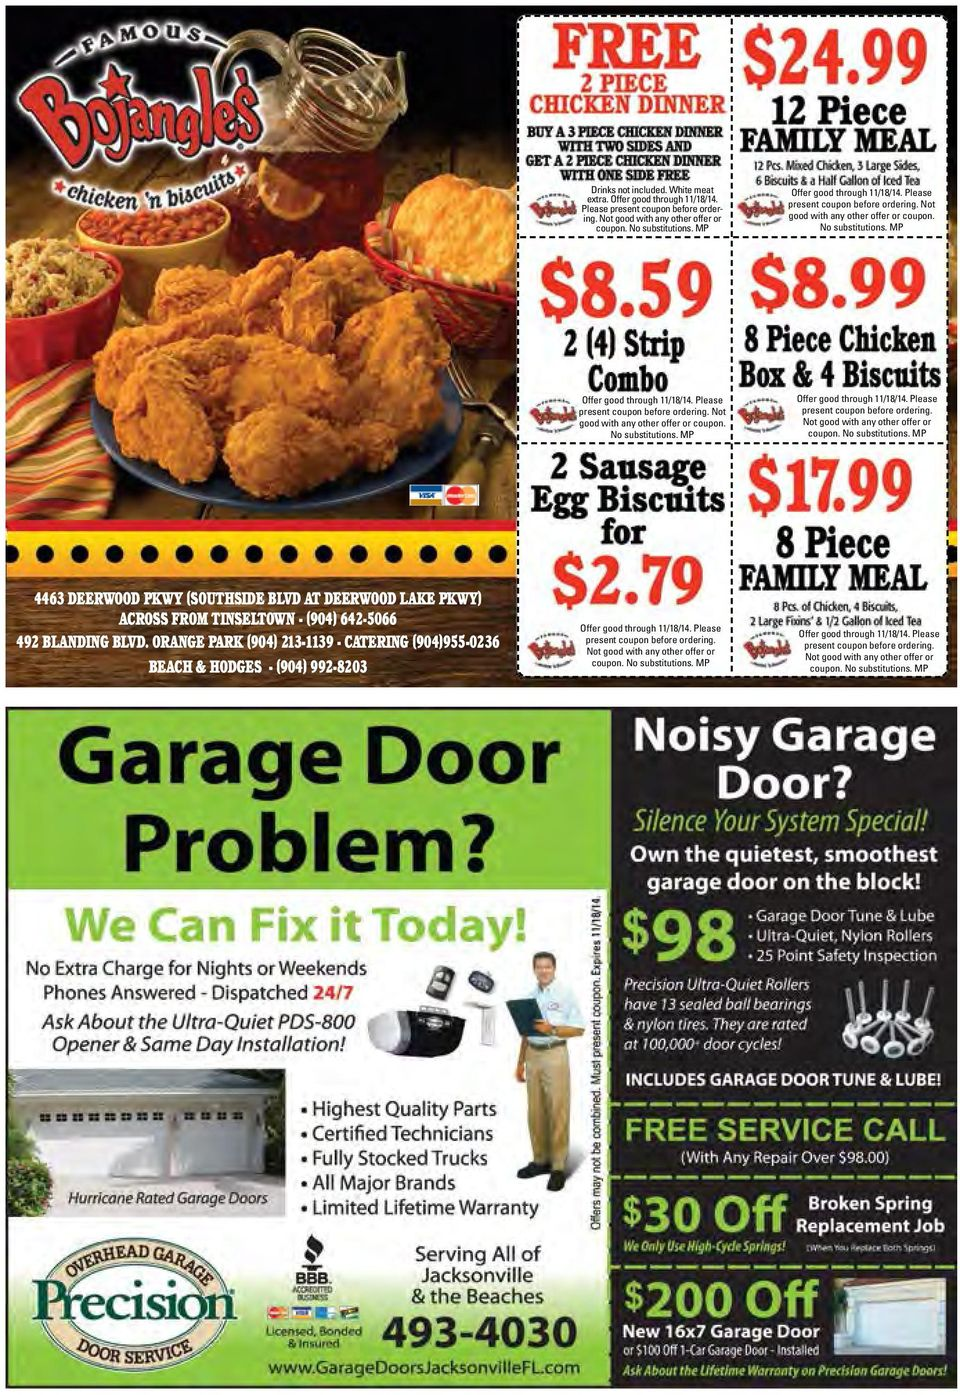 Not good with any other offer or coupon. No substitutions. MP Offer good through 11/18/14. Please present coupon before ordering. Not good with any other offer or coupon. No substitutions. MP 4463 DEERWOOD PKWY (SOUTHSIDE BLVD AT DEERWOOD LAKE PKWY) ACROSS FROM TINSELTOWN - (904) 642-5066 492 BLANDING BLVD.